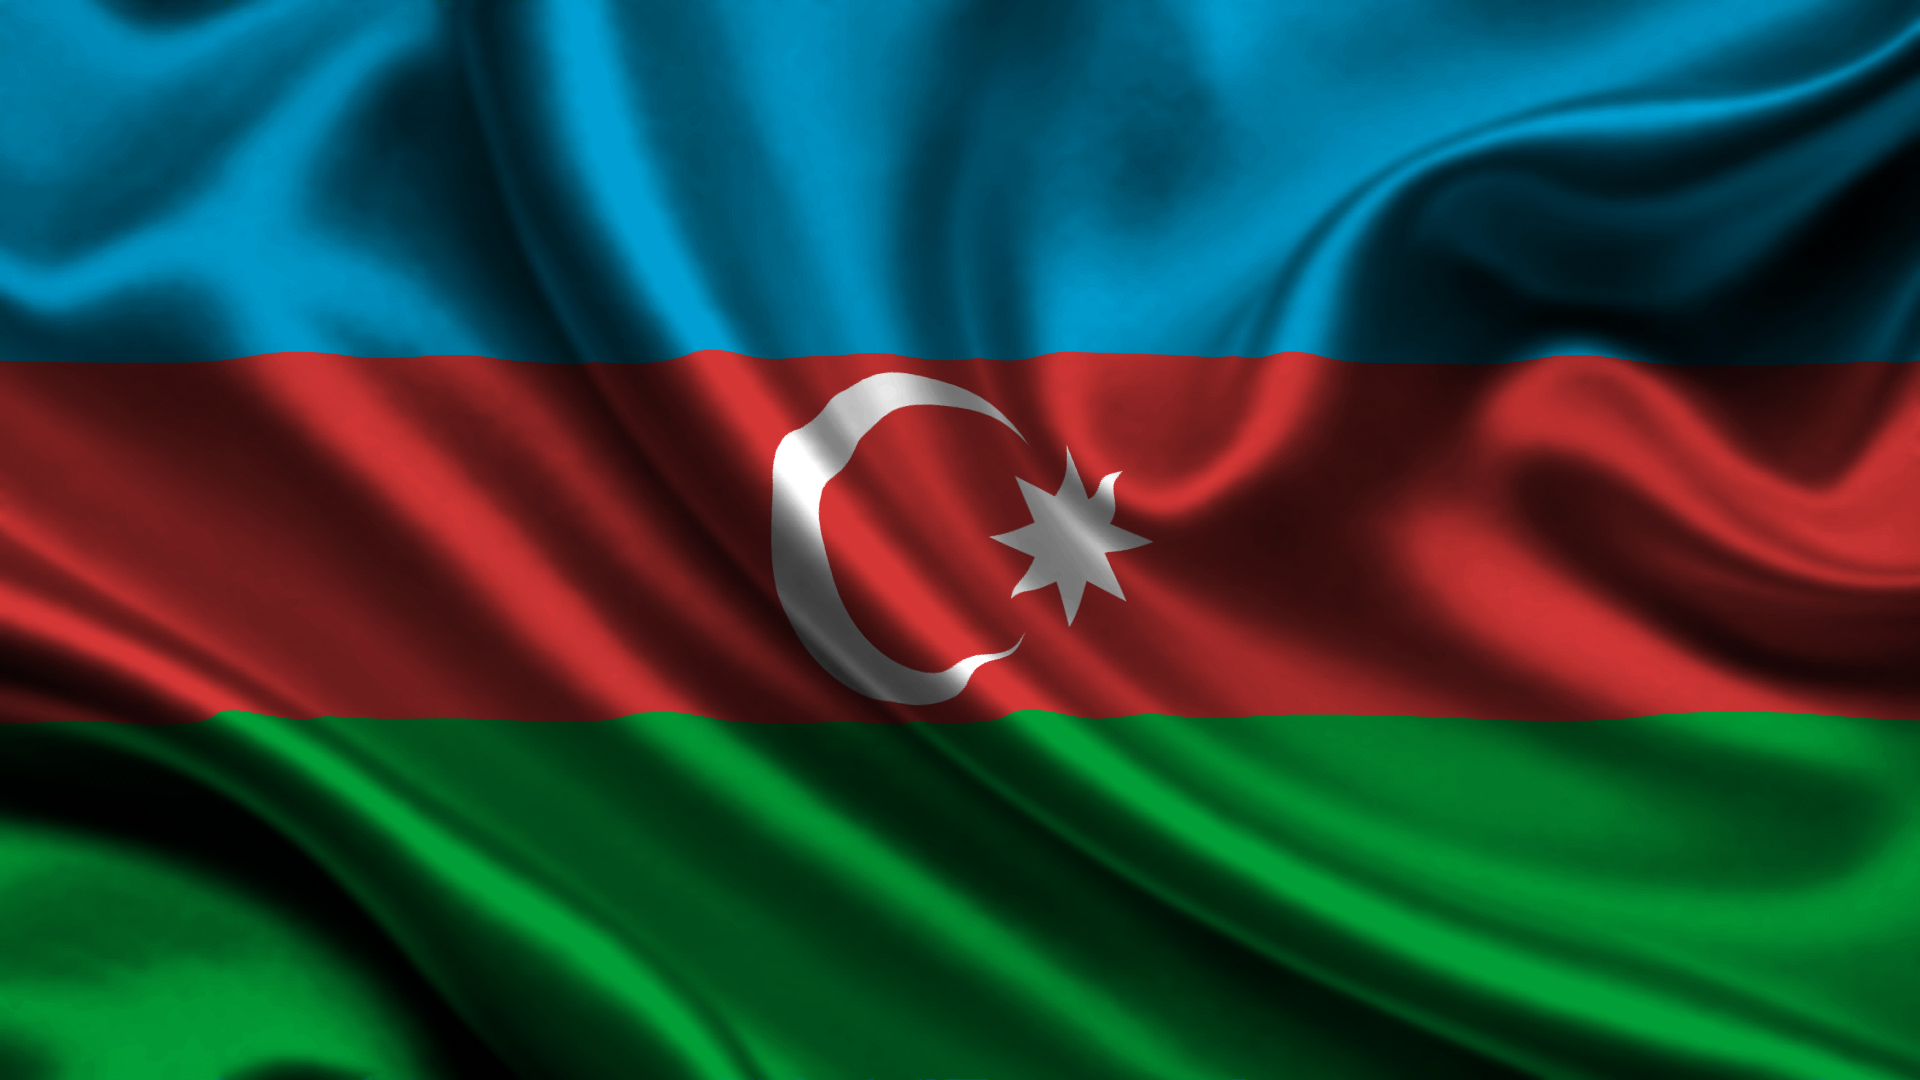 Azerbaijan Flag Download